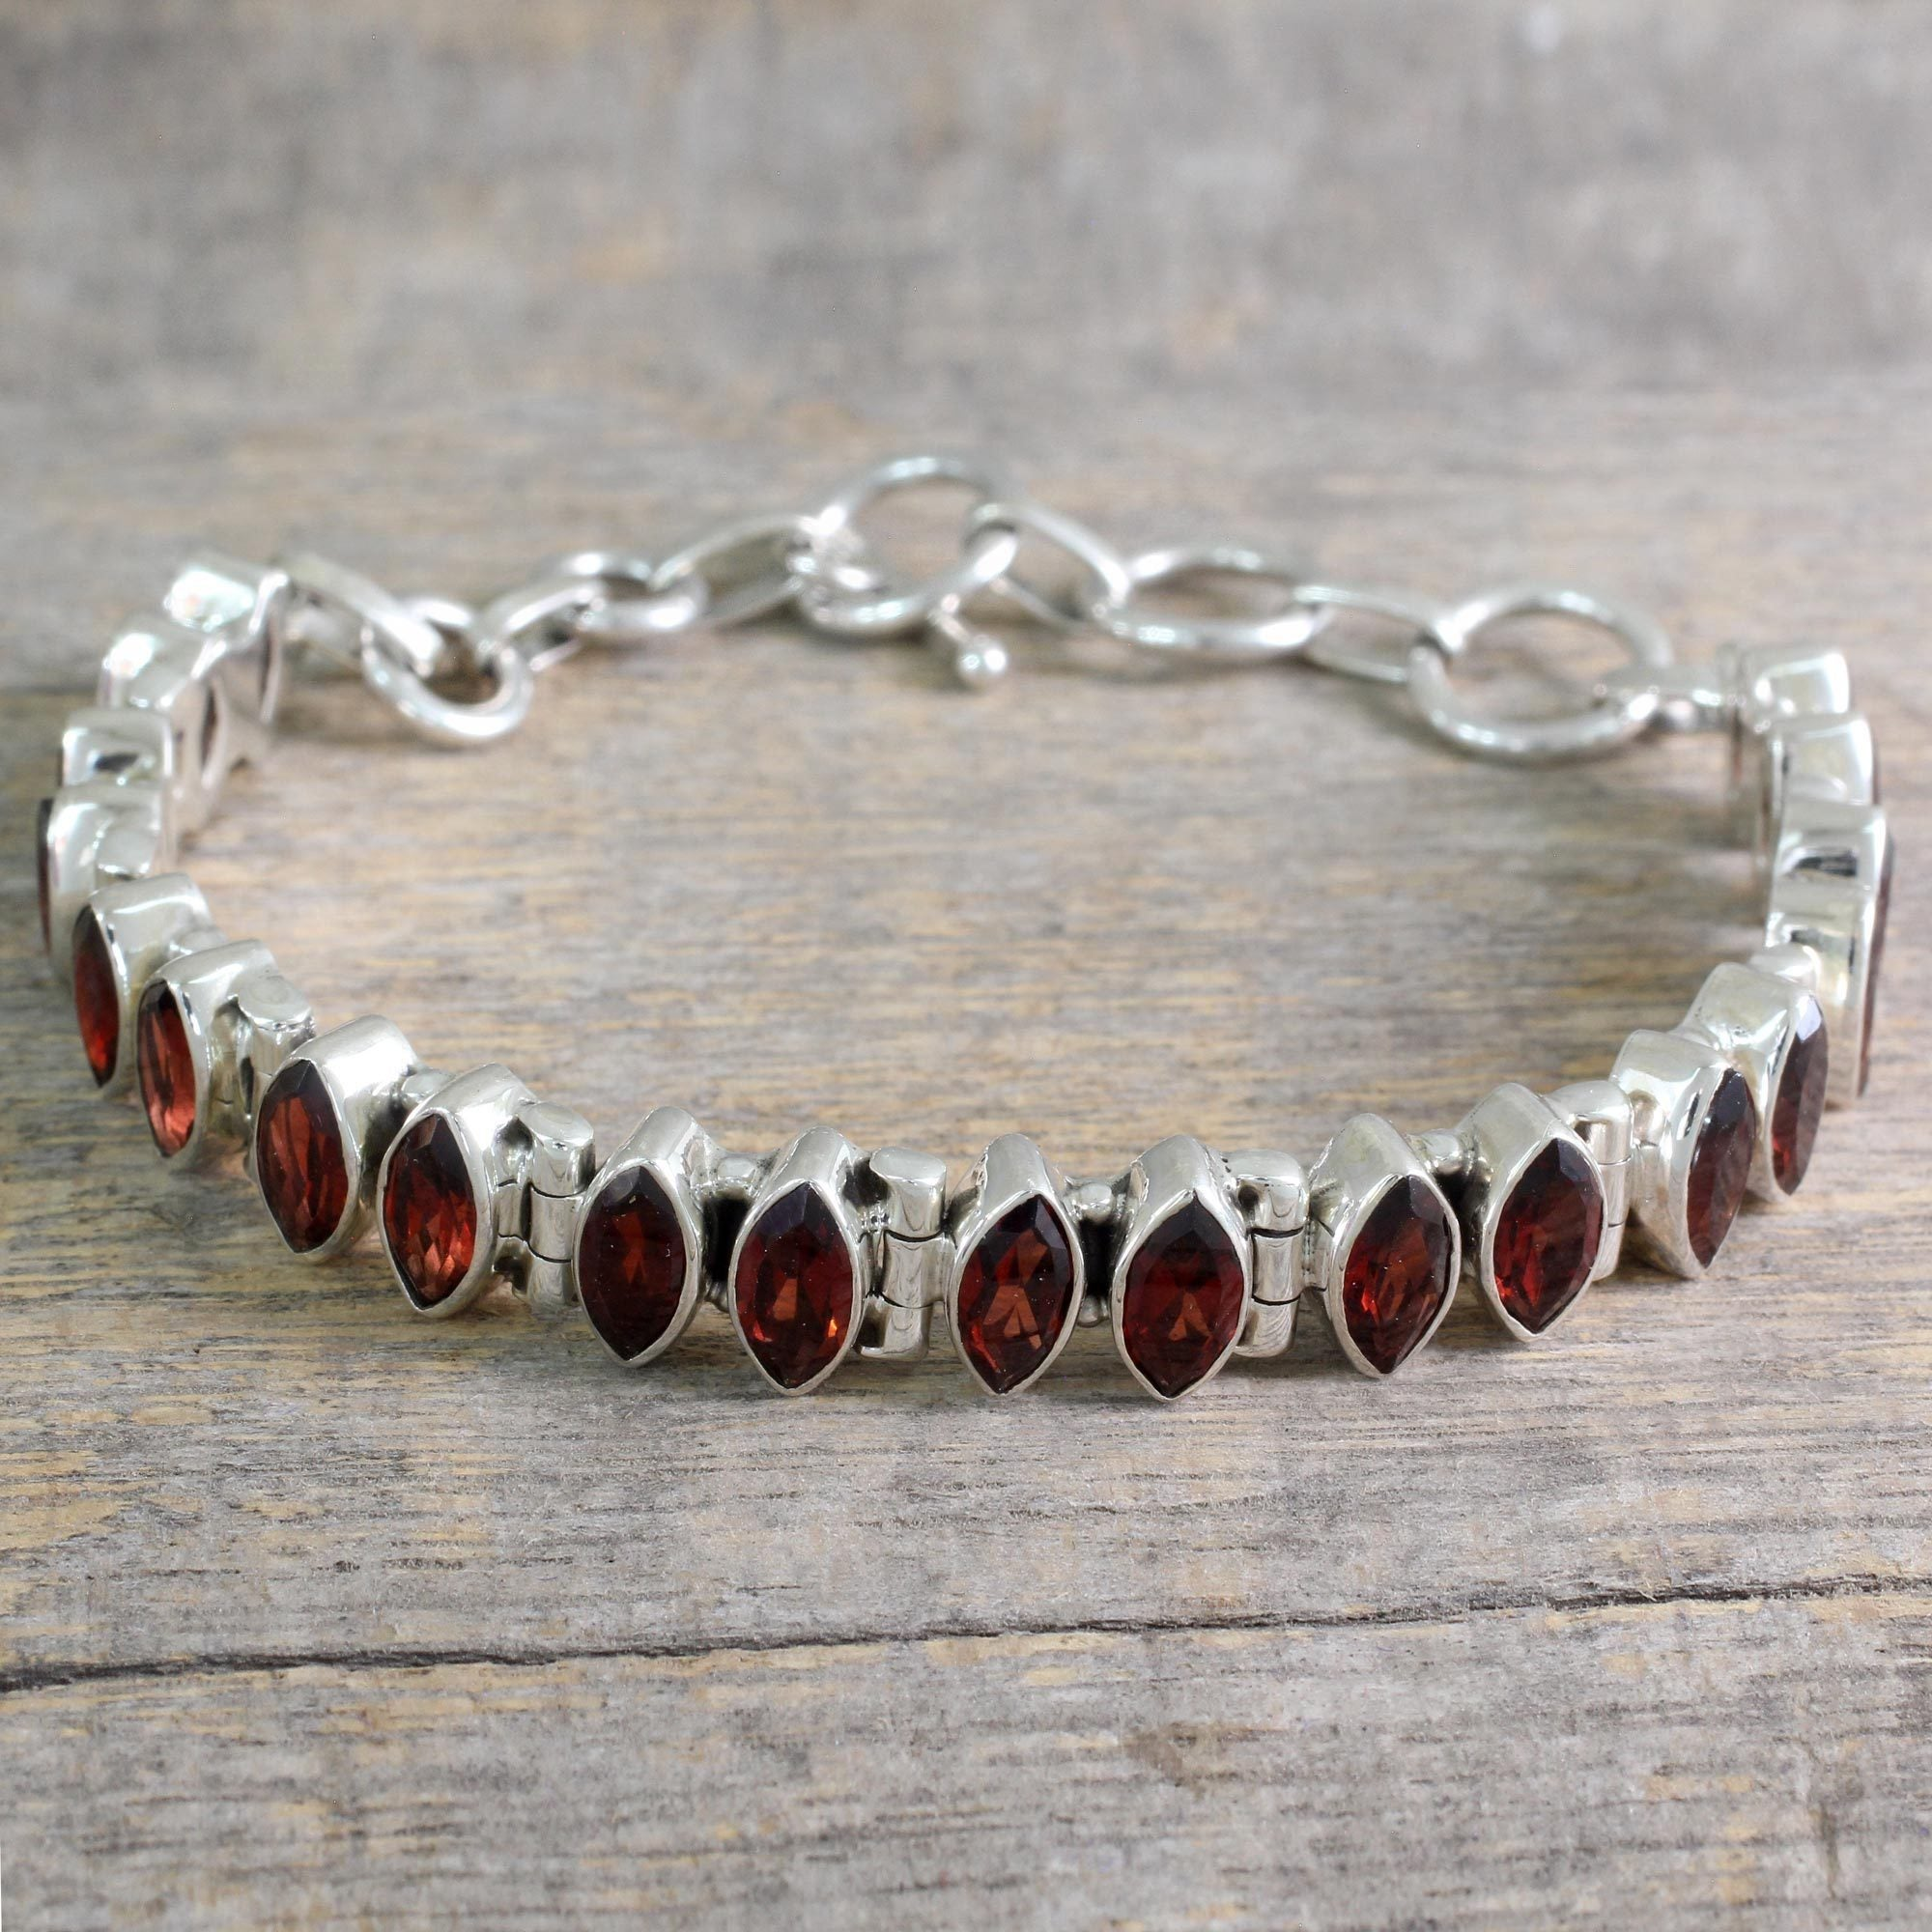 metaphysical garnet dark bracelet women mozambique p red jewelry chakra stone healing gift for christmas